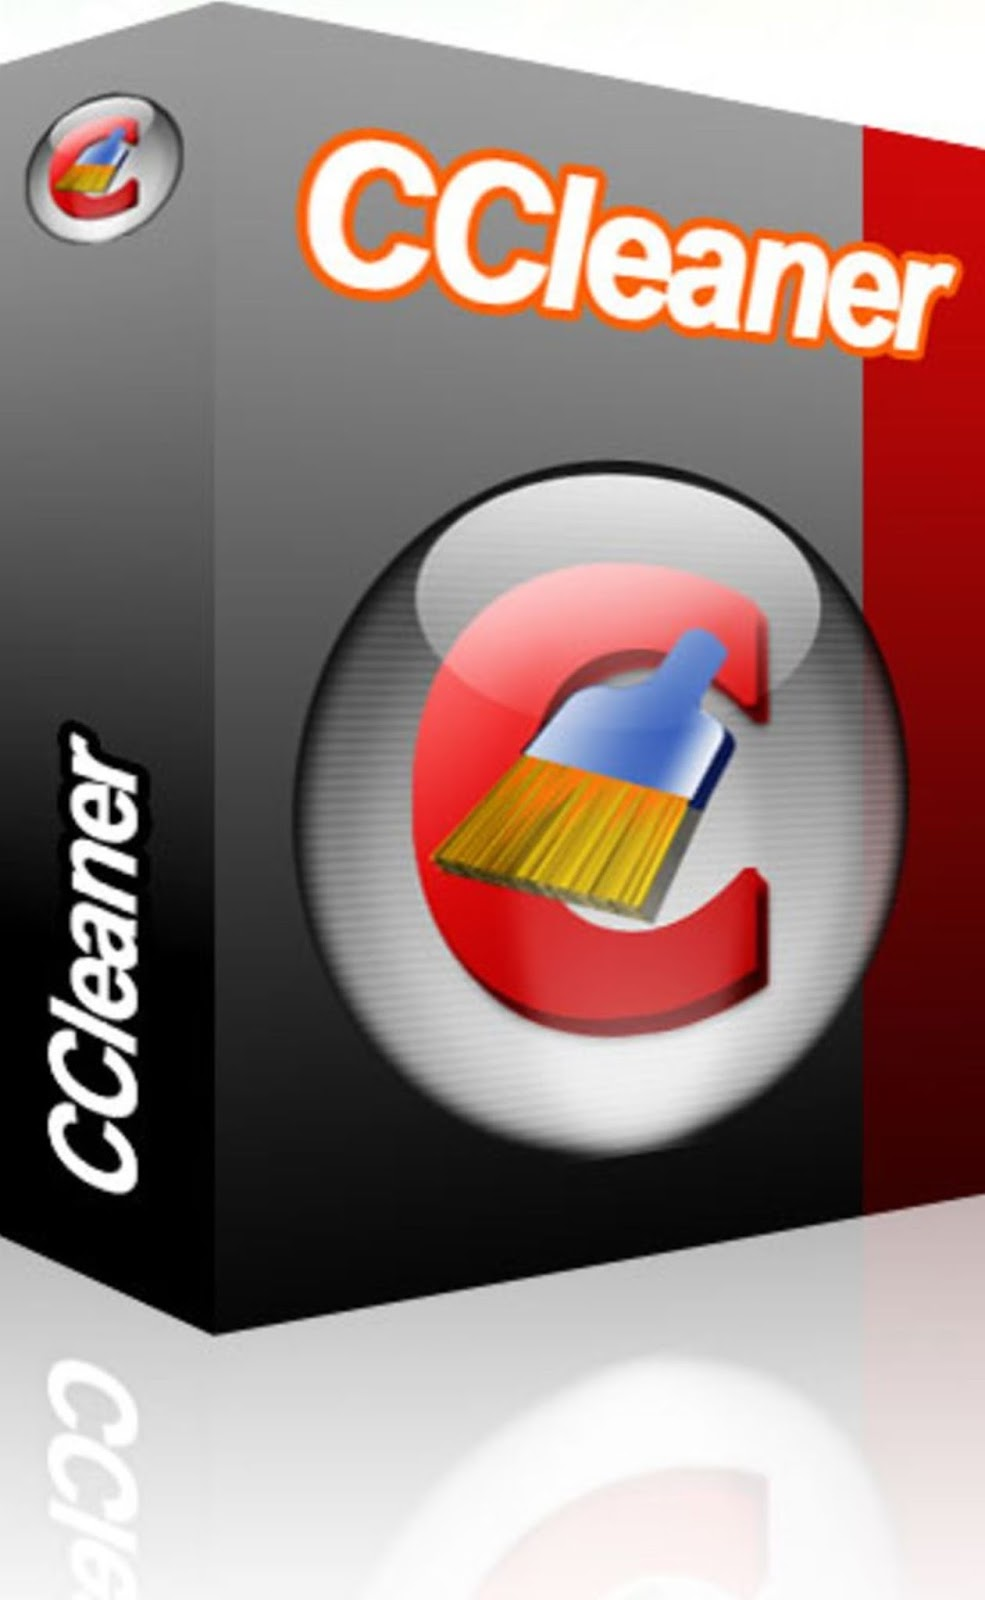 CCleaner Pro 5.65.7632 Crack With Torrent 2020 Free Download